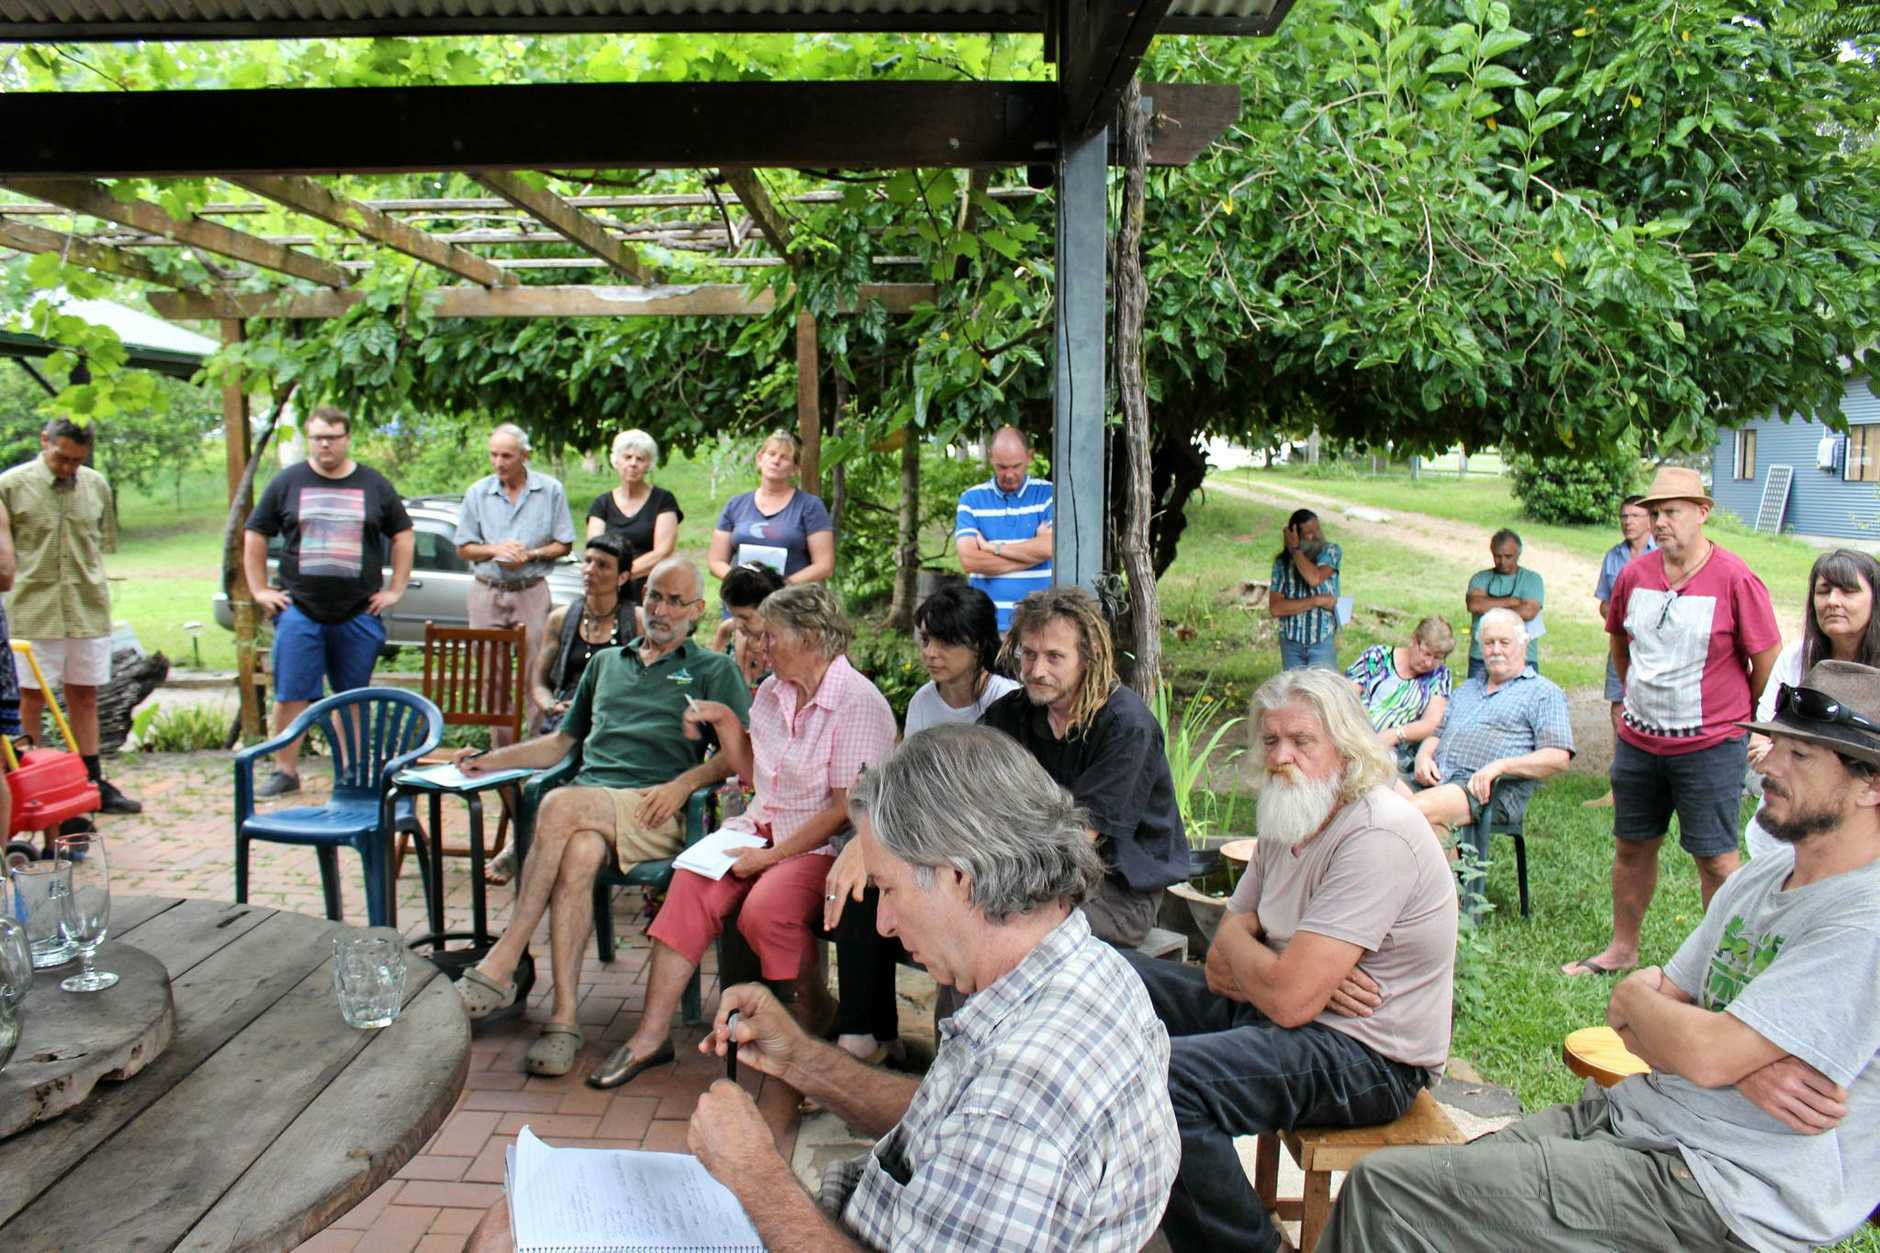 Rowlands Creek Rd residents are concerned about a development application to extract 24-megalitres of water per year from their community. Pictured here at a public meeting on the issue in late 2016.